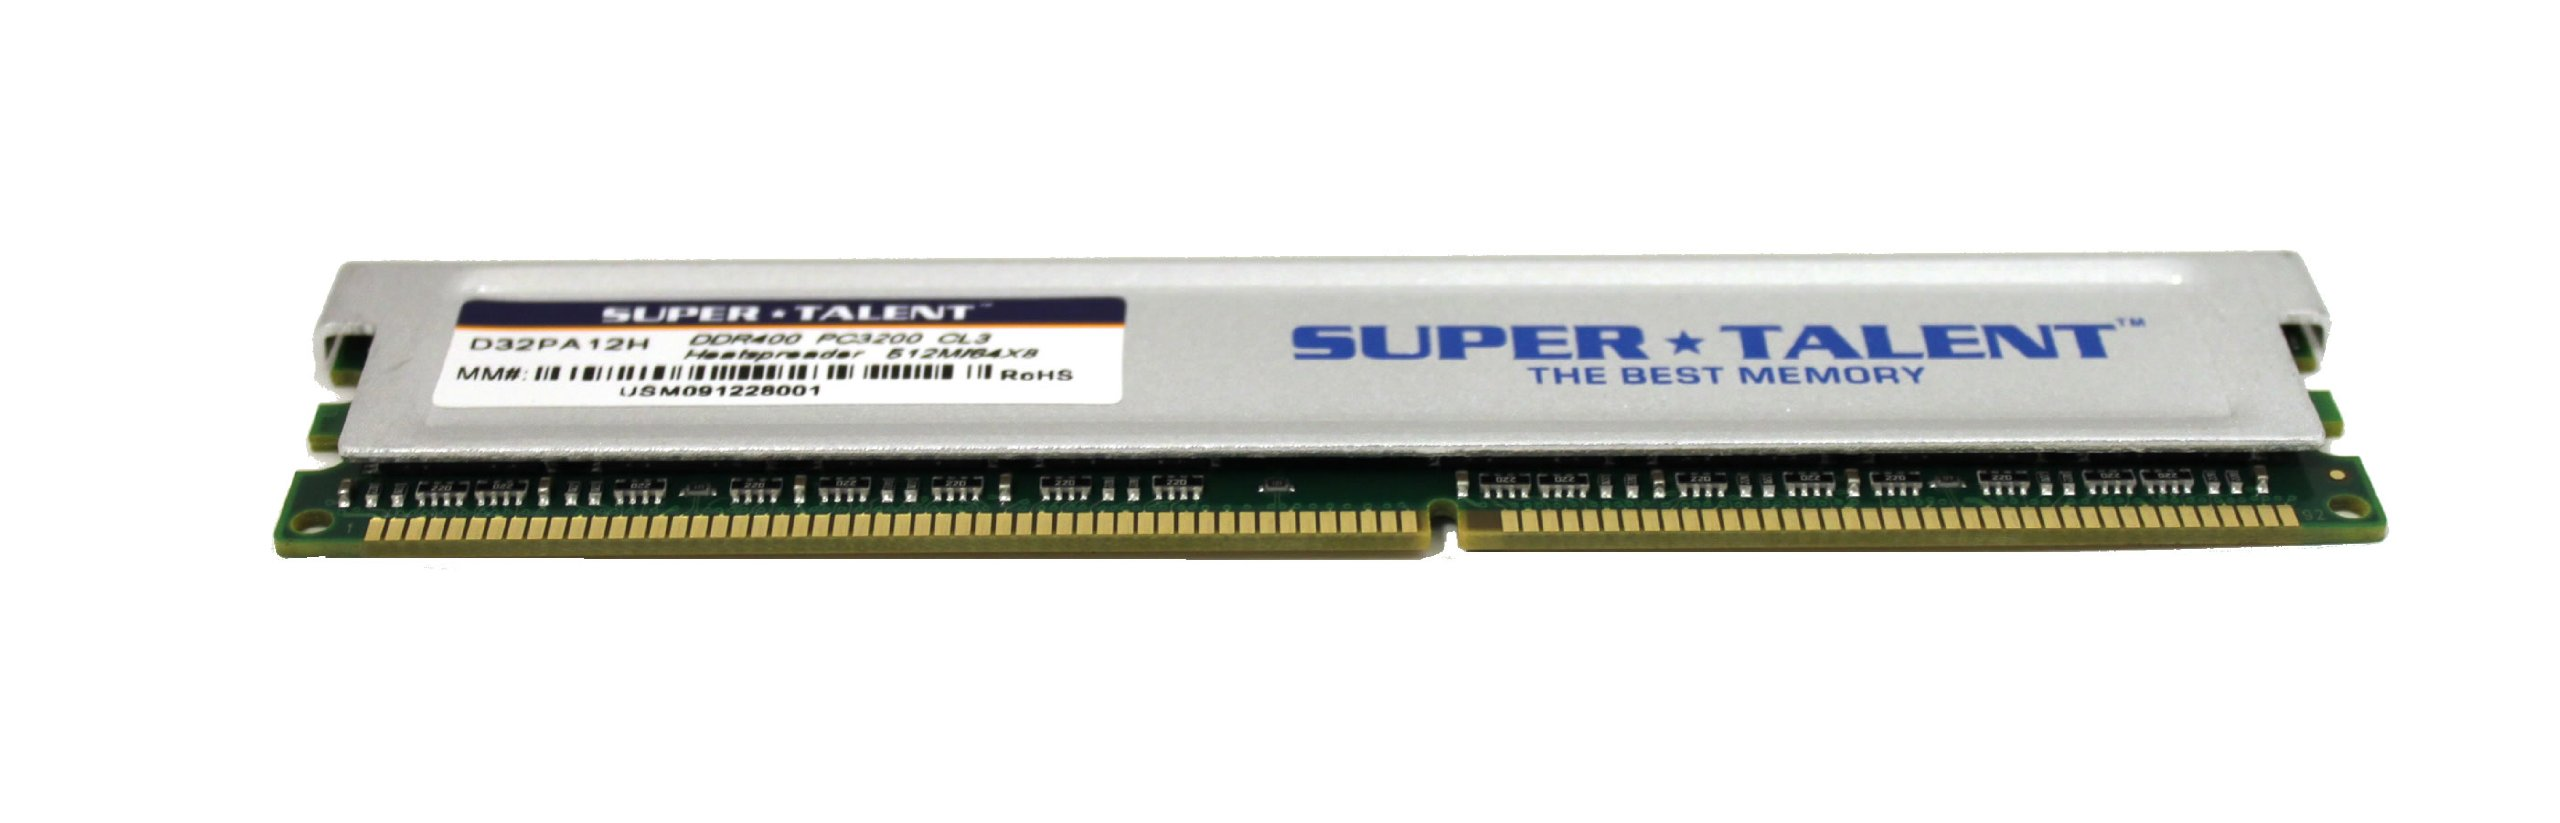 Super Talent DDR400 512MB/64X8 CL3 8CH Memory (PC and MAC G5) D32PA12H by Super Talent (Image #3)